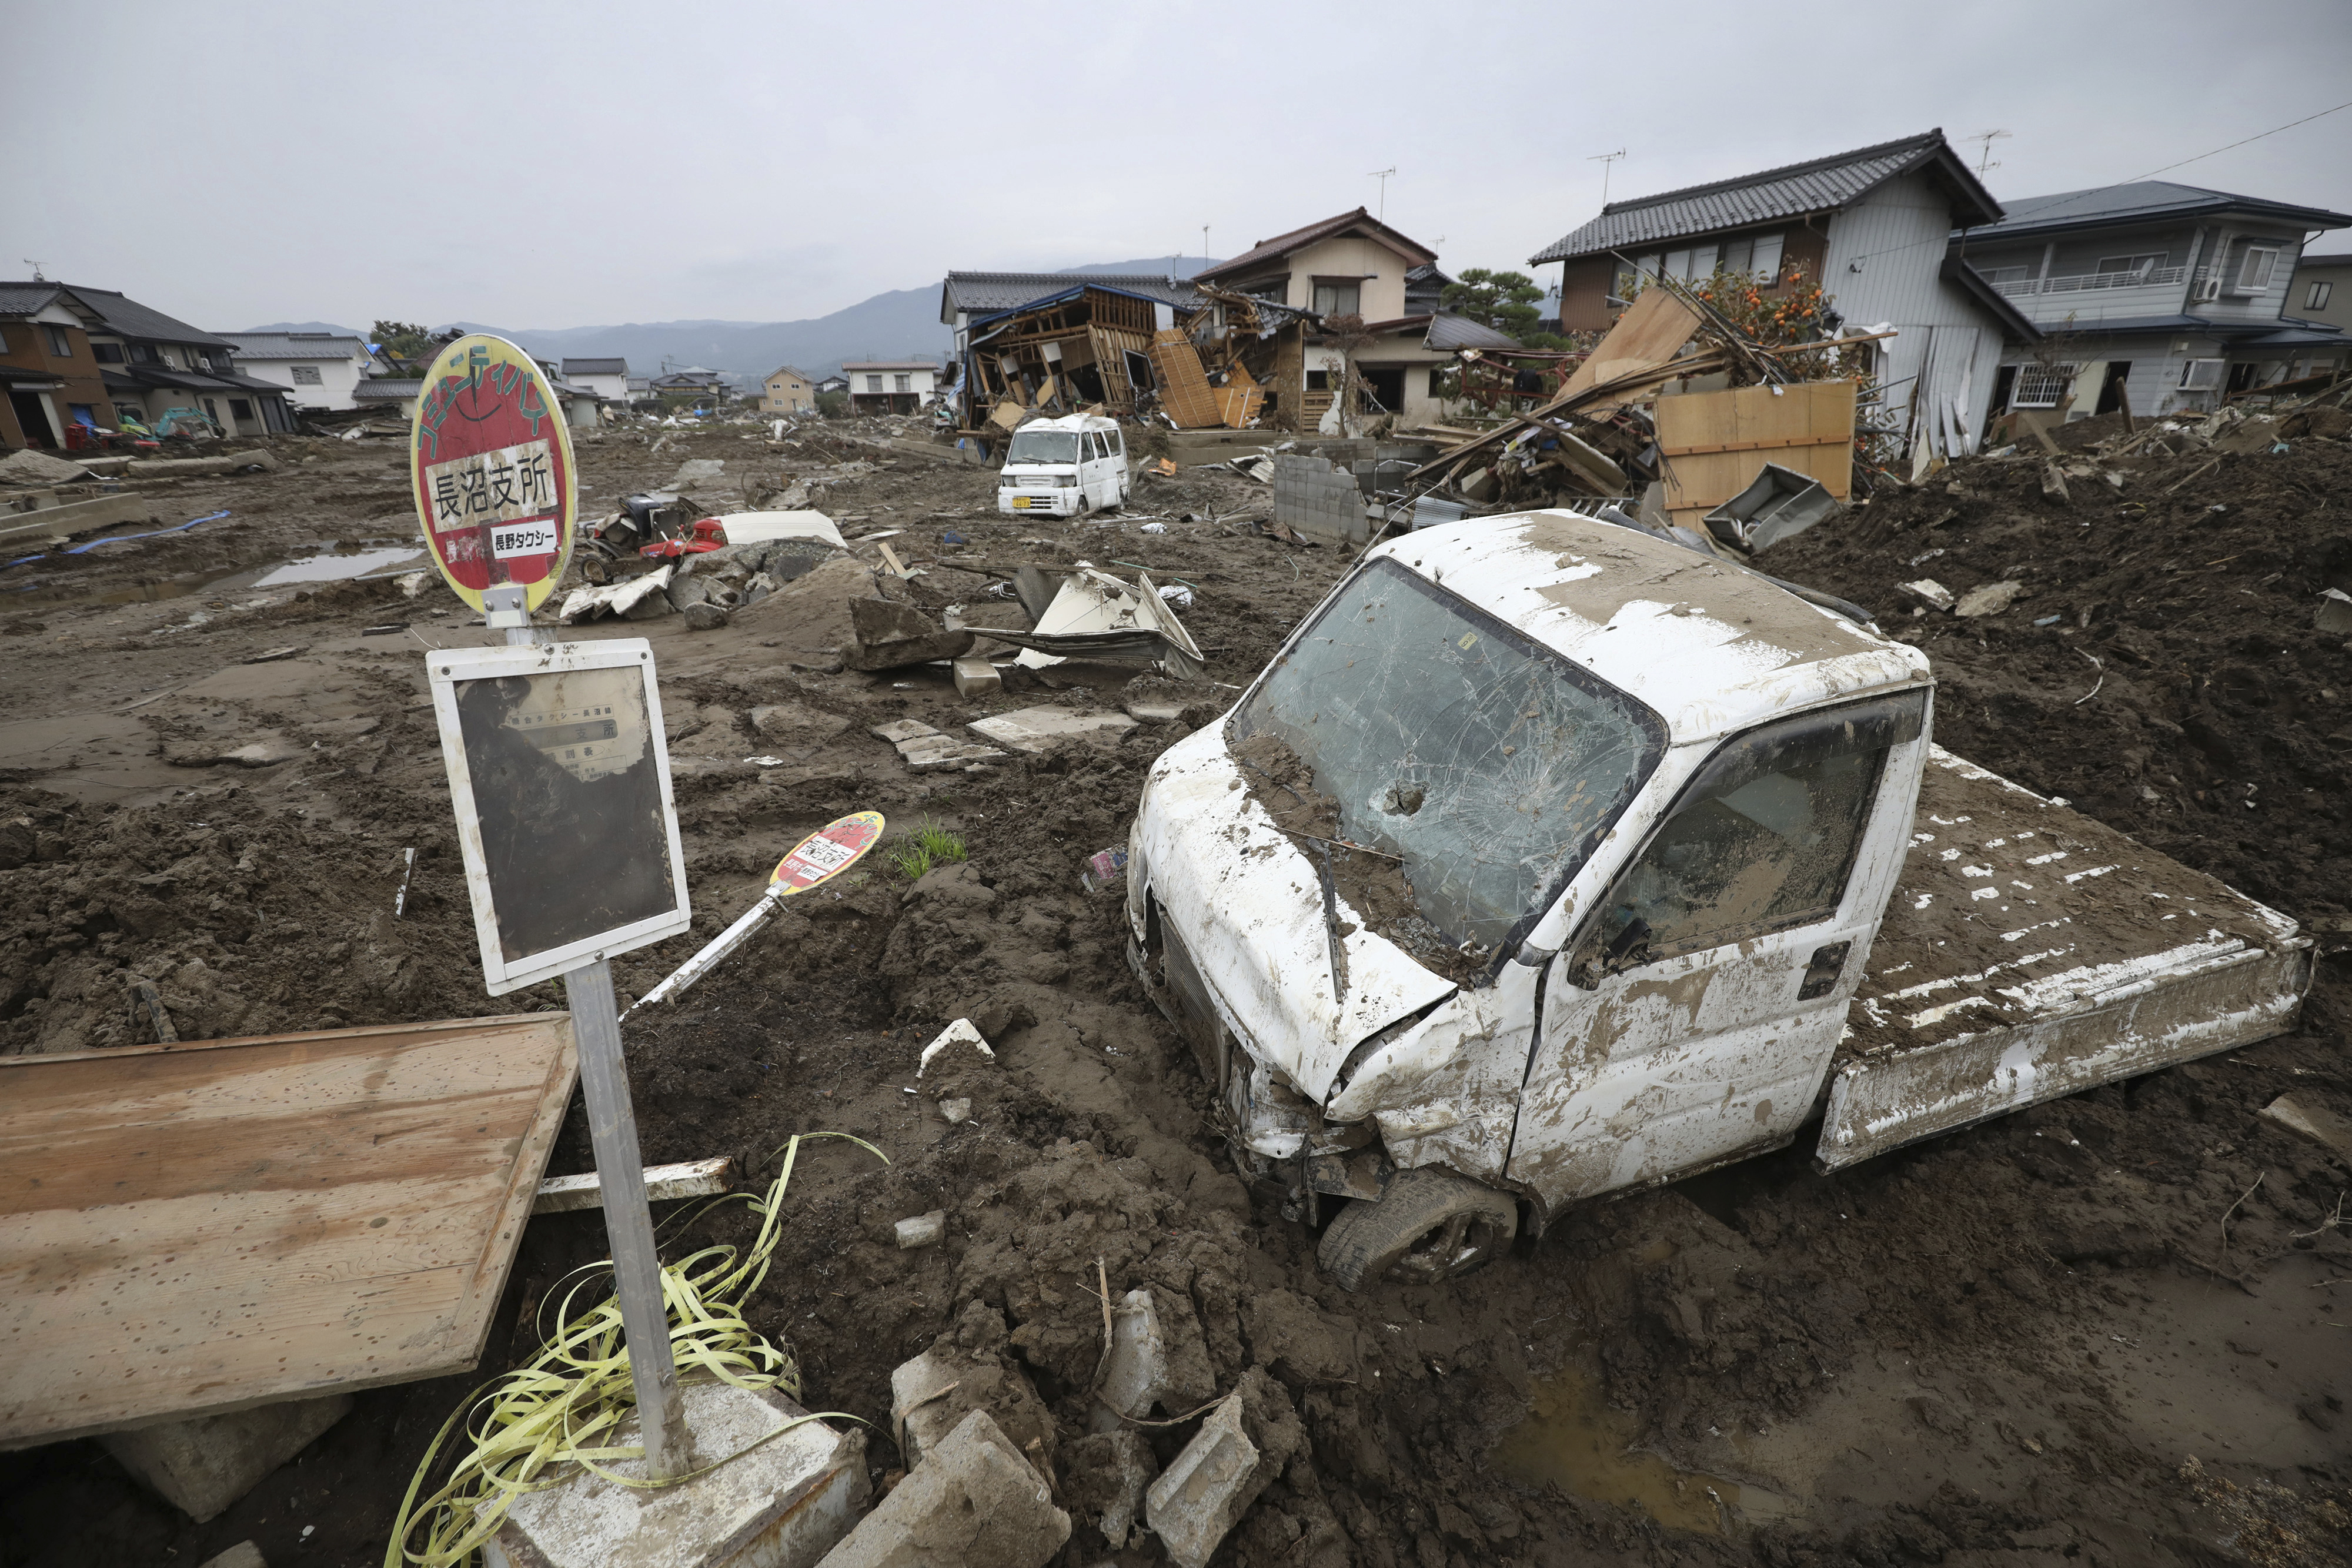 Second year of record tropical cyclone losses in Japan